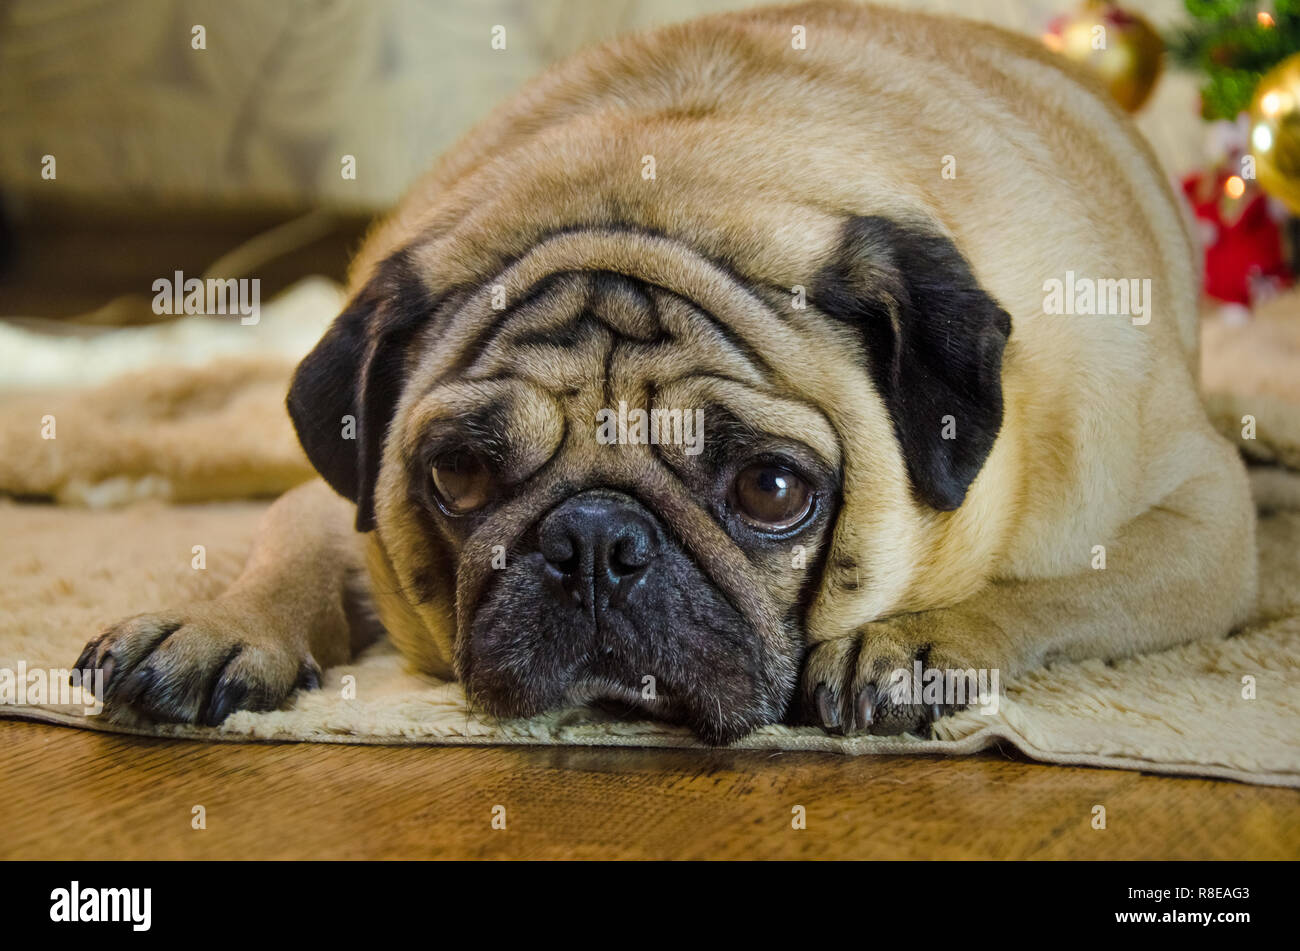 sluggish, lazy, dull dog at new year holidays. pet is sad beige, fawn pug. thick, fat room dog lay near christmas tree. background is traditional holiday home. - Stock Image